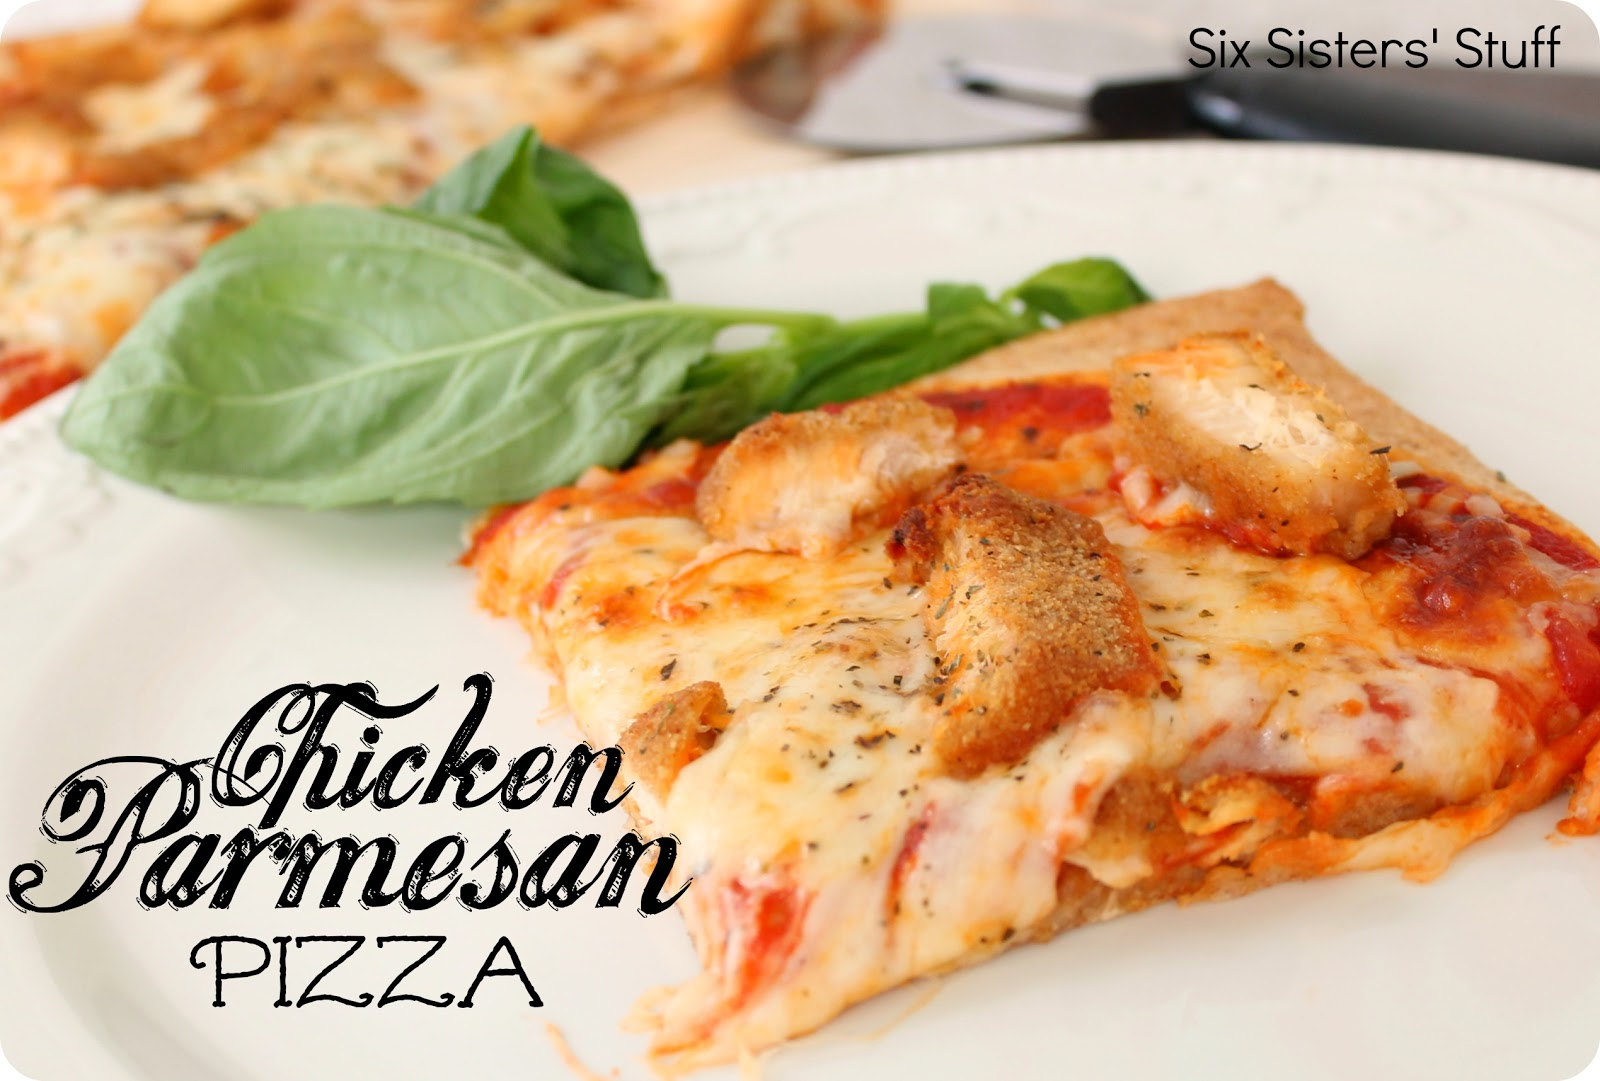 Chicken Parmesan Pizza Recipe | Six Sisters' Stuff